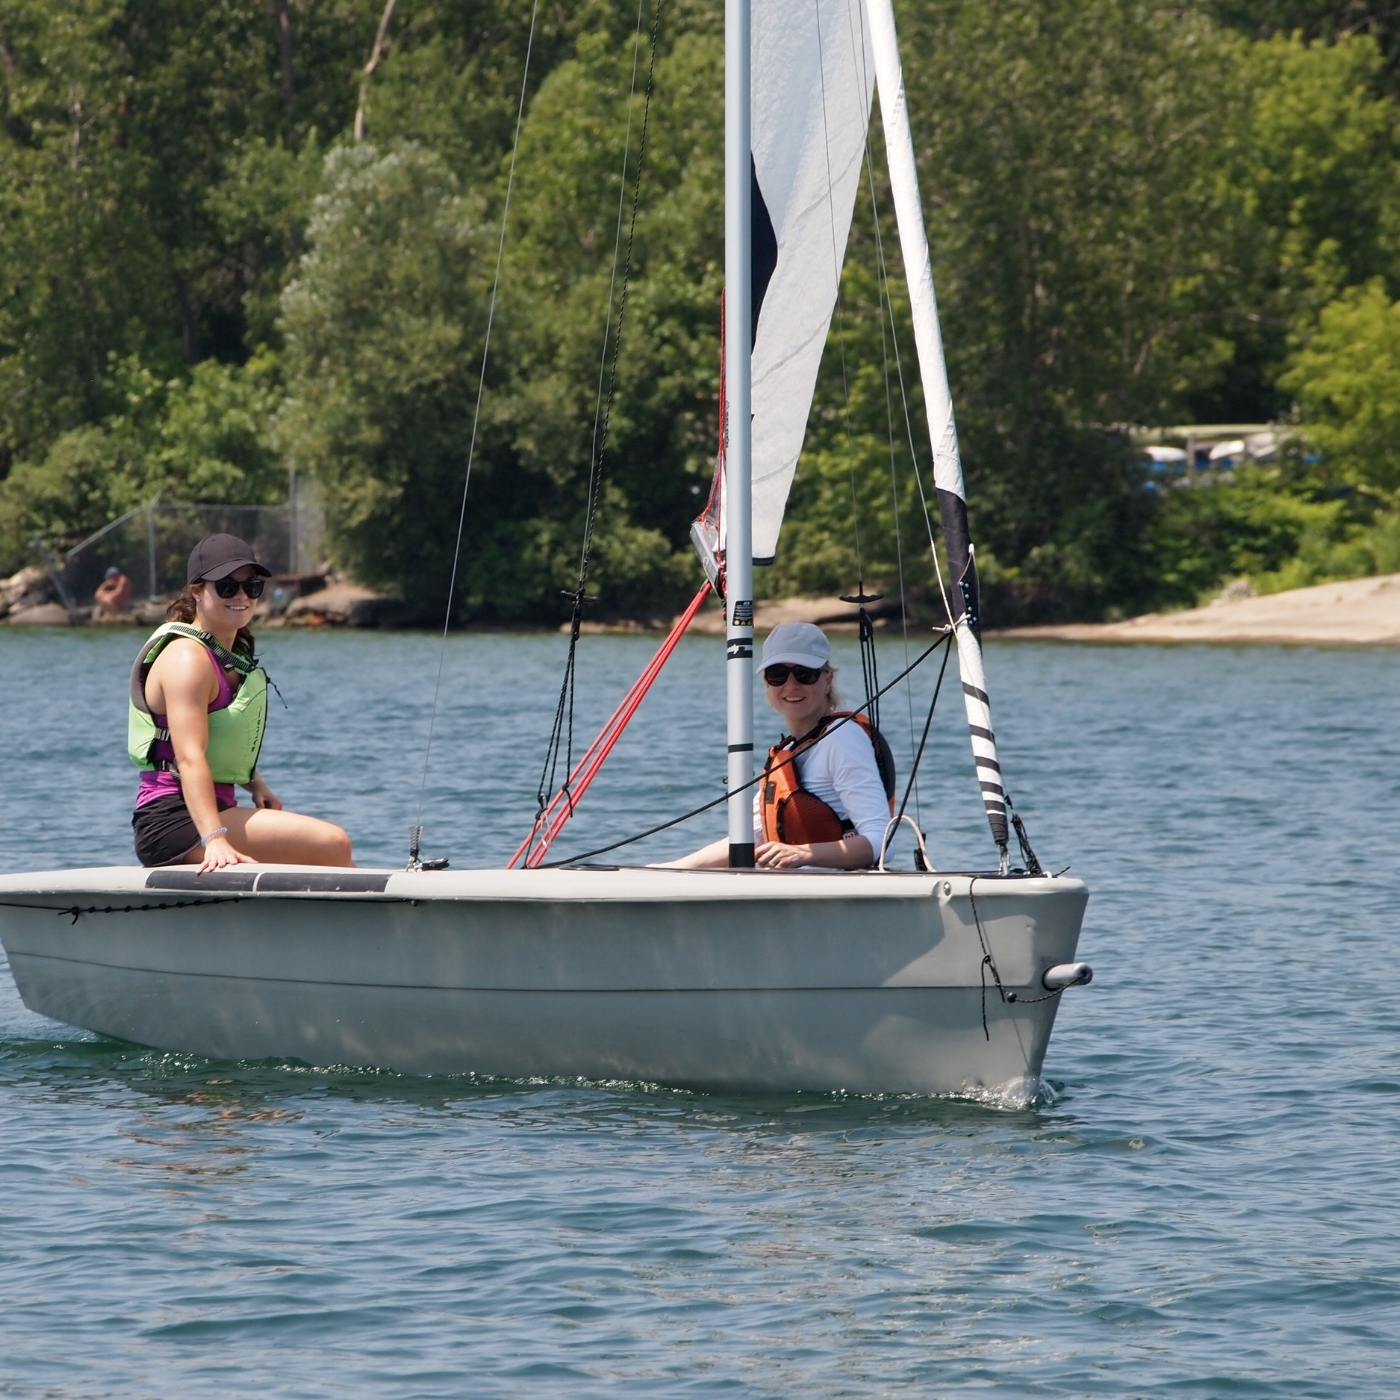 Sailing Fanatics - adult learn to sail sailing school in Toronto